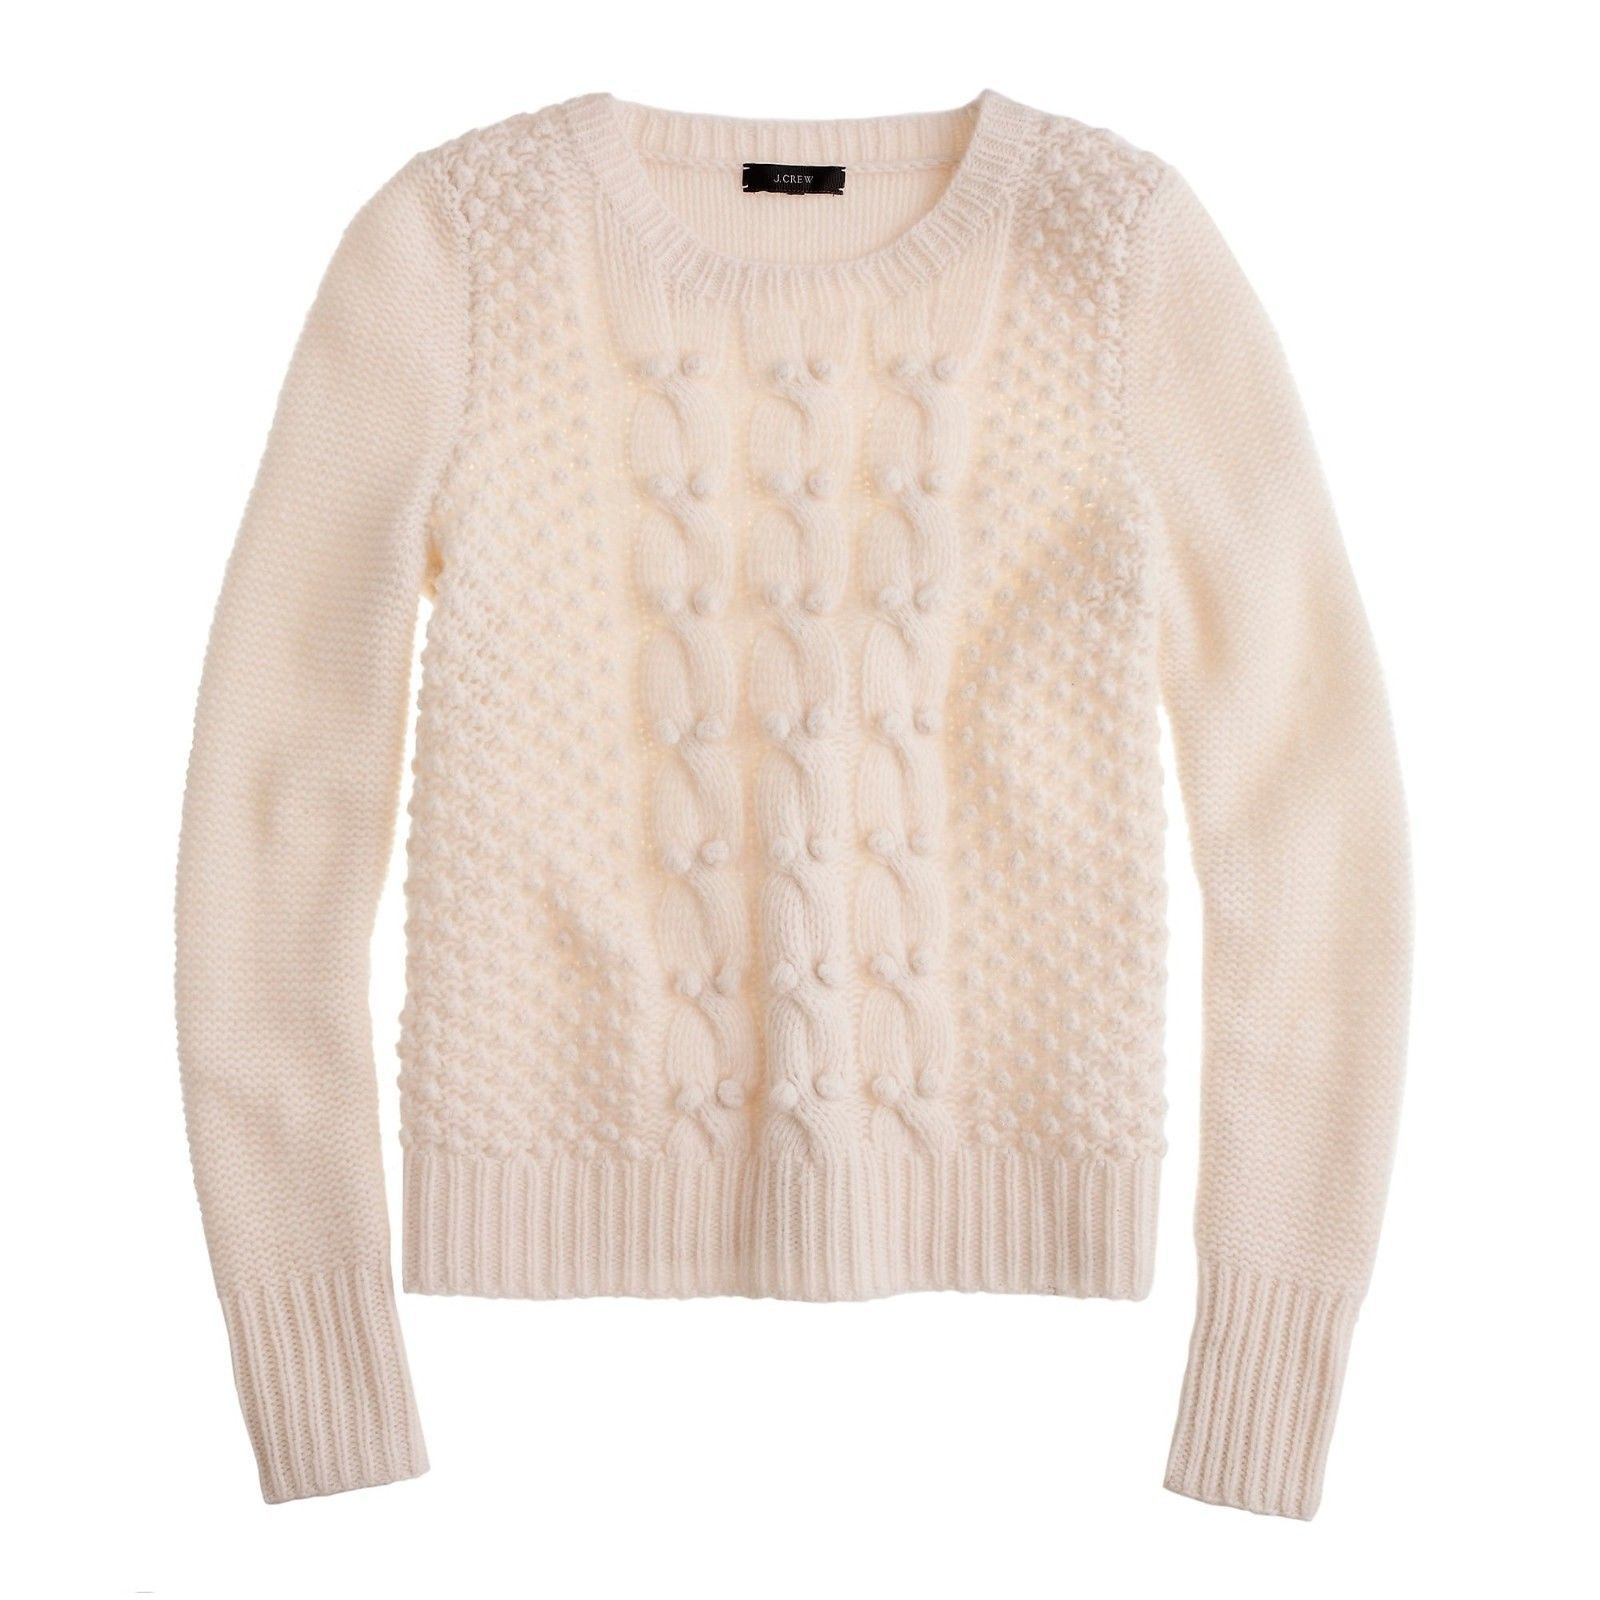 Primary image for J Crew Ivory 100% Lambs Wool Handknit Cable Knit Popcorn Sweater M